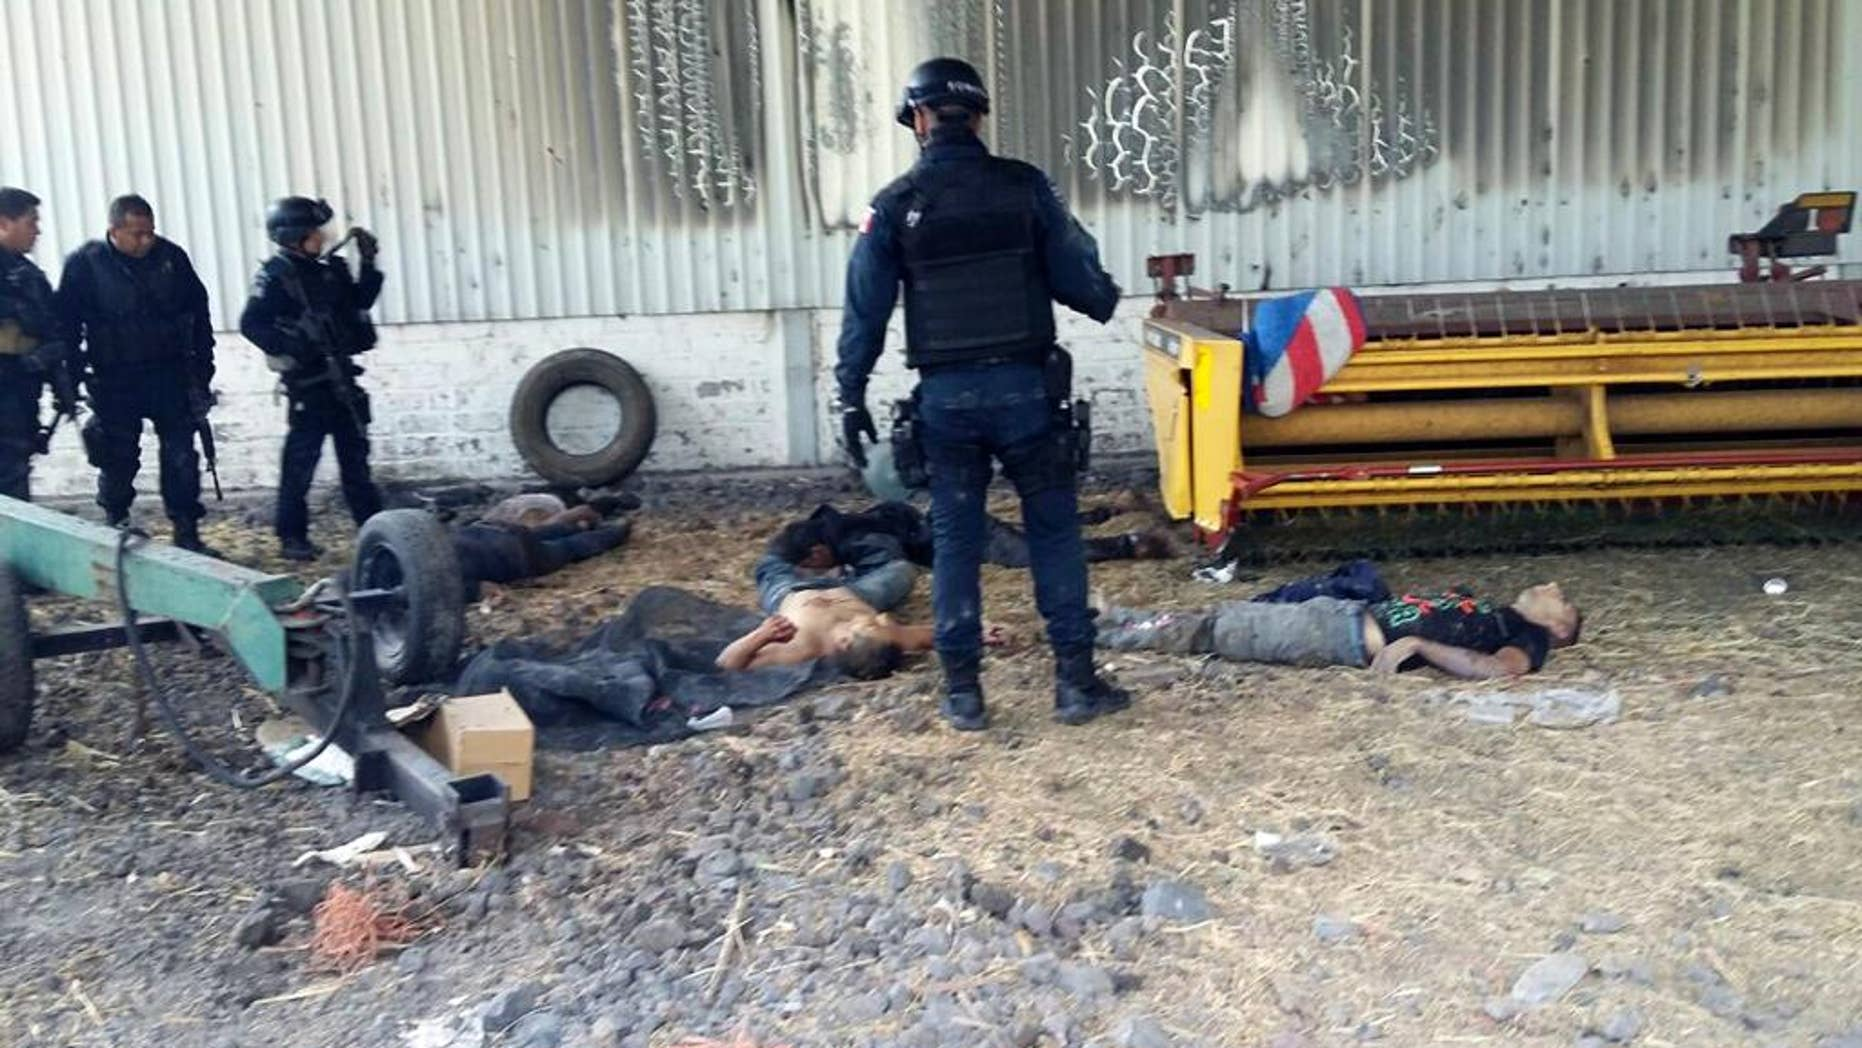 FILE - In this May 22, 2015, file photo, Federal police stand near the bodies of men who authorities say were suspected cartel gunmen at the Rancho del Sol, near Ecuanduero, in western Mexico. Mexico's president dismissed the chief of the federal police force Monday, Aug. 29, 2016, less than two weeks after the country's human rights commission released a scathing report alleging federal police executed at least 22 suspected drug cartel members during a raid on the ranch. (AP Photo/Oscar Pantoja Segundo, File)